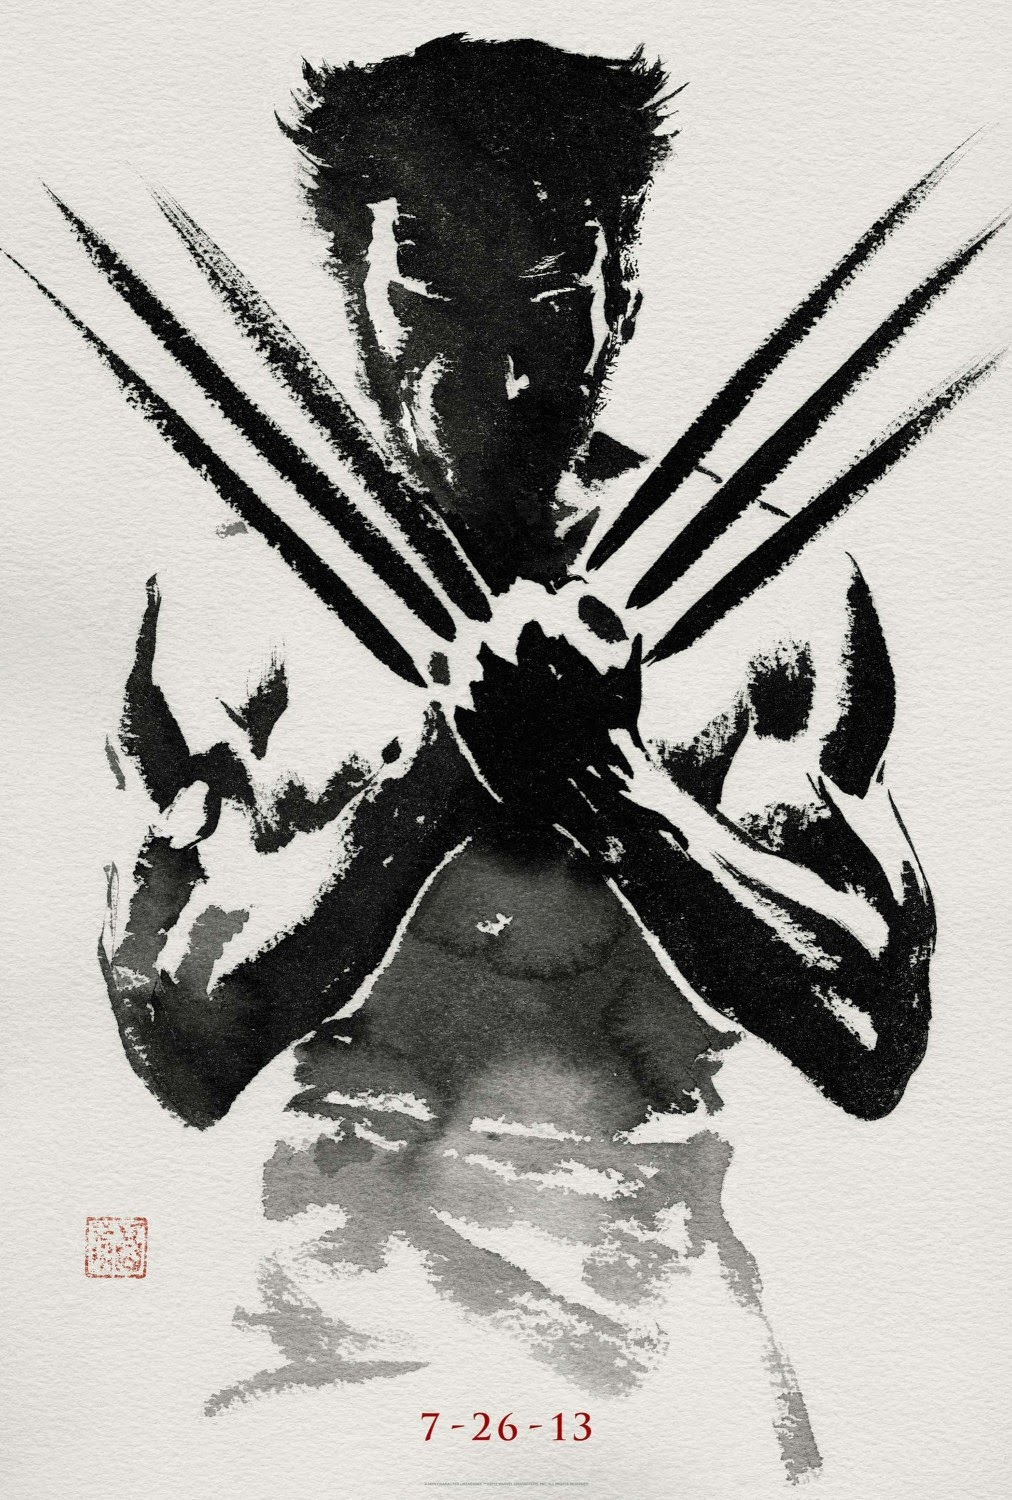 Few Really Plays A Role As The Wolverine Easily Has Best Series Of Posters For Franchise Before We Even Get To Very Cool Black And White